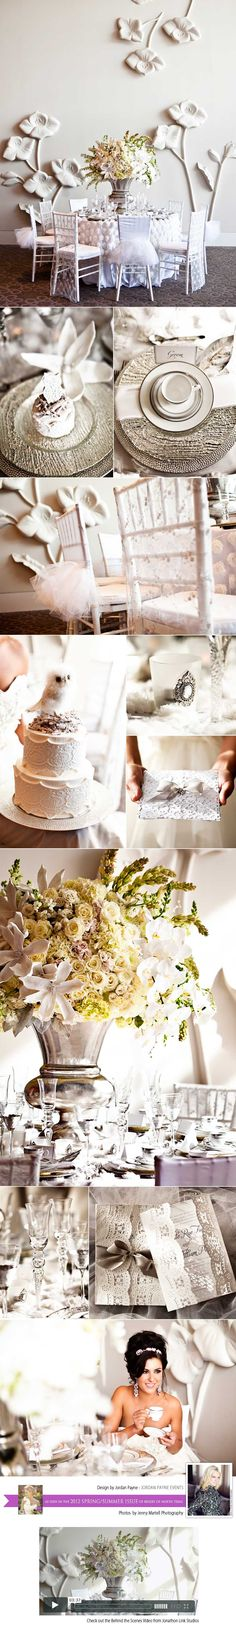 White lace romance wedding tabletop design by Jordan Payne Events.  Photography by Jenny Martell Photography.  Venue Westin Galleria Hotel.  #wedding #design #white #romance